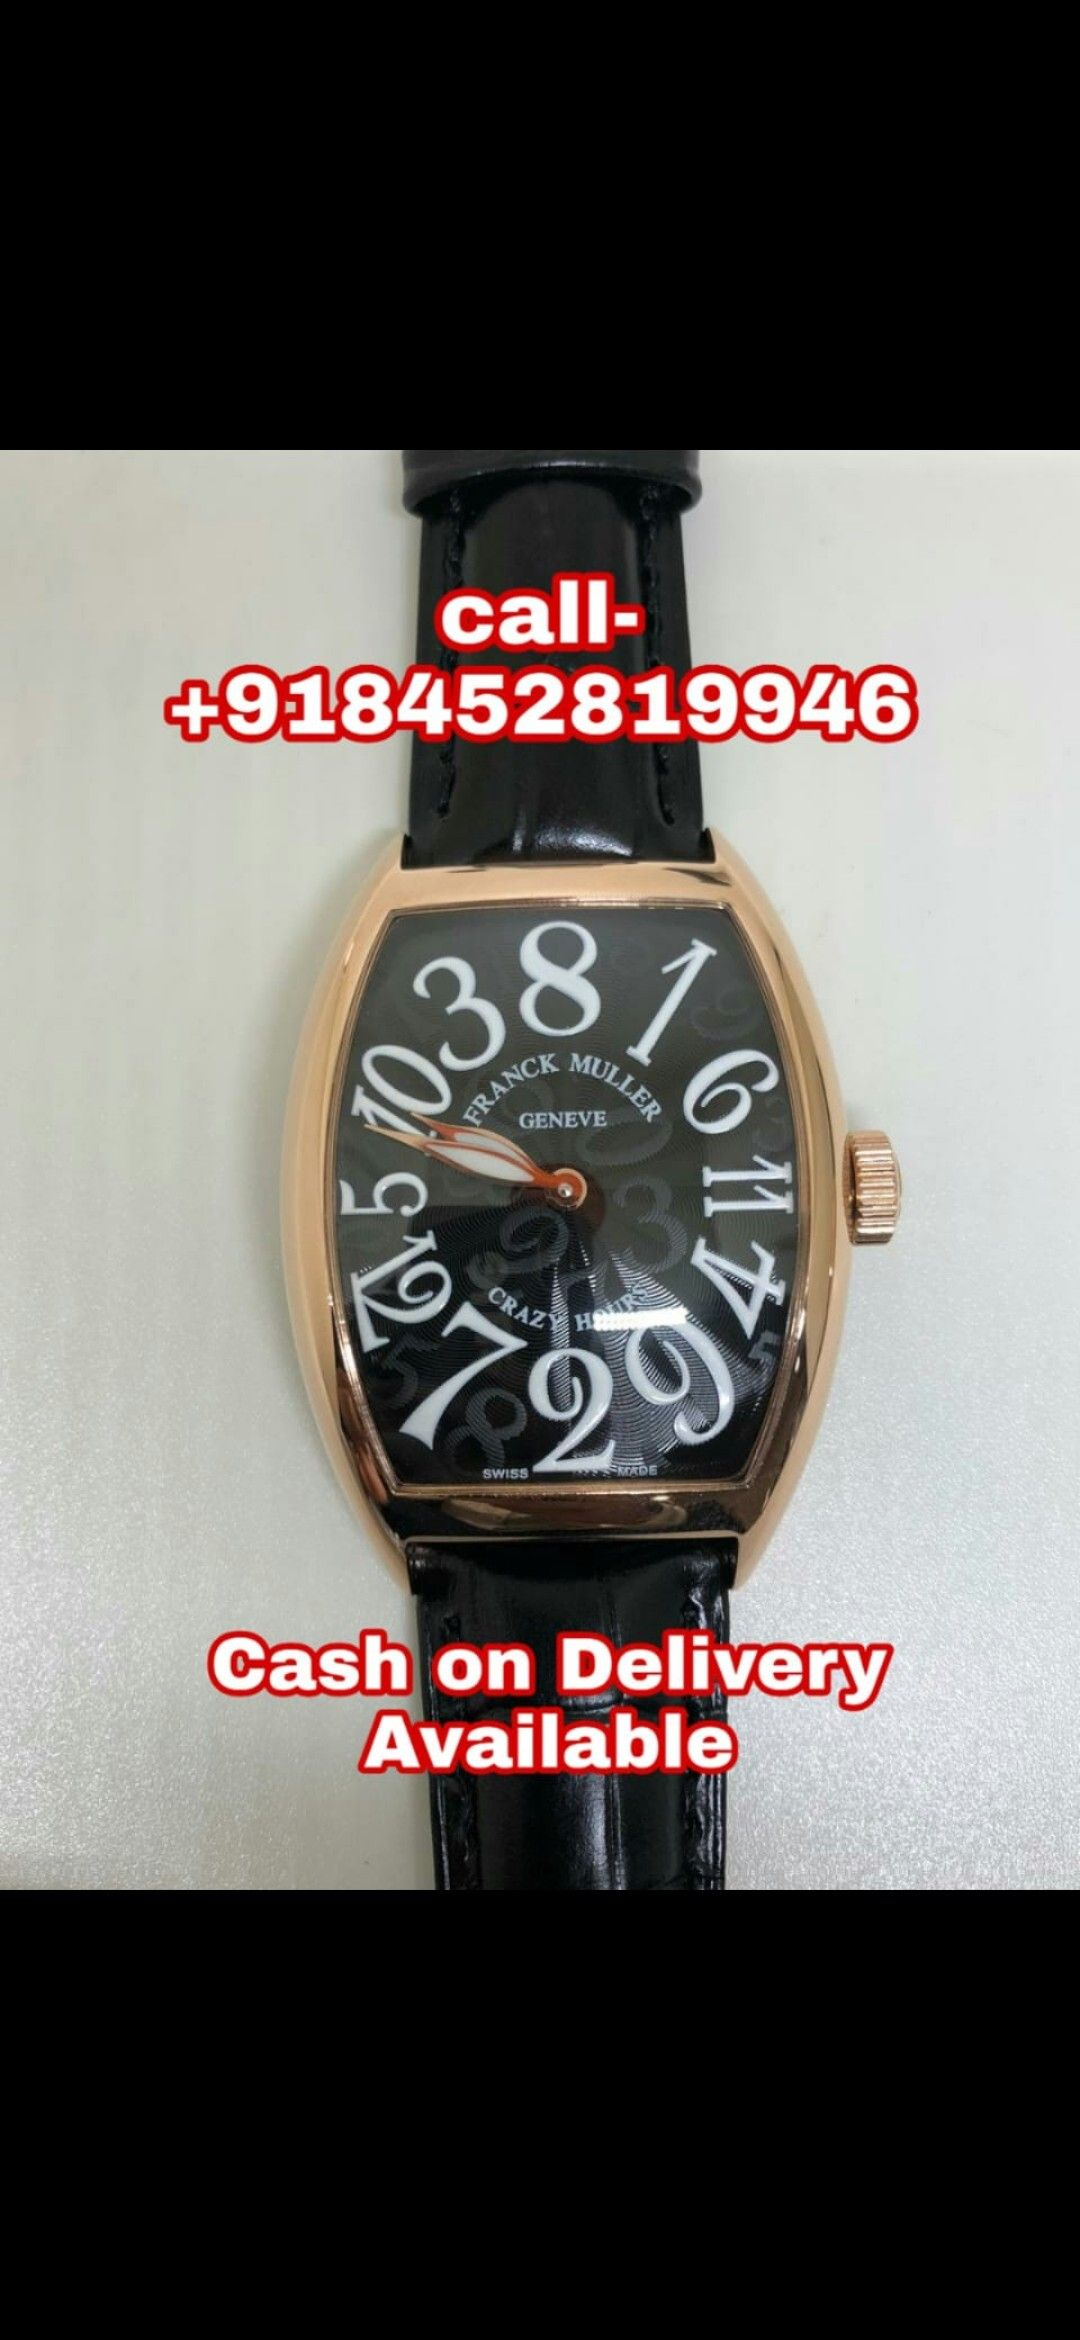 Buy Franck Muller At Cheapest Price Through Cash On Delivery All Over India Stuff To Buy Franck Muller Swiss Made Watches